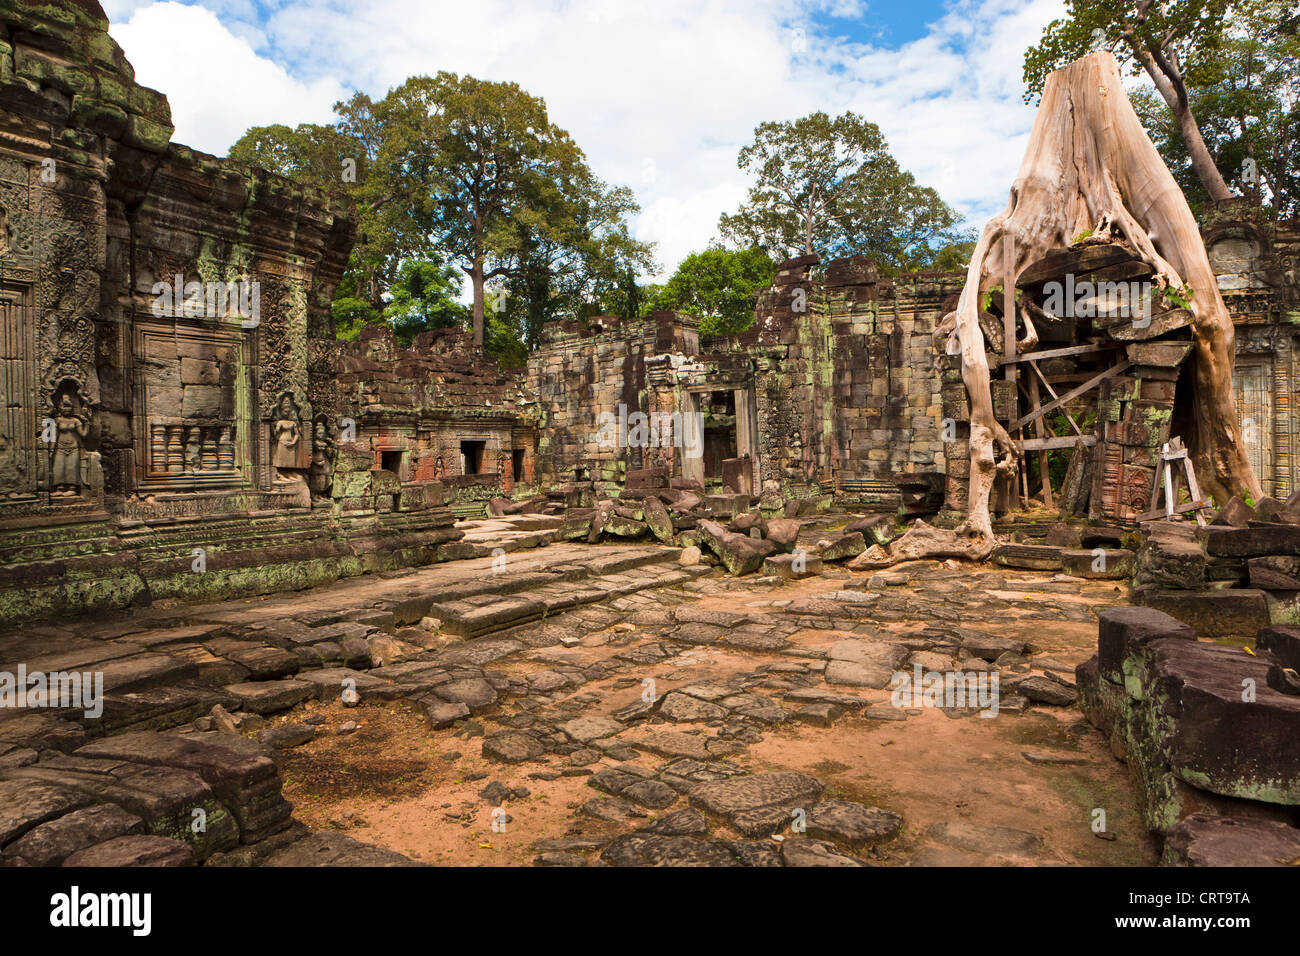 Preah Khan (Sacred Sword), Angkor, UNESCO World Heritage Site, Cambodia, Indochina, Southeast Asia, Asia - Stock Image